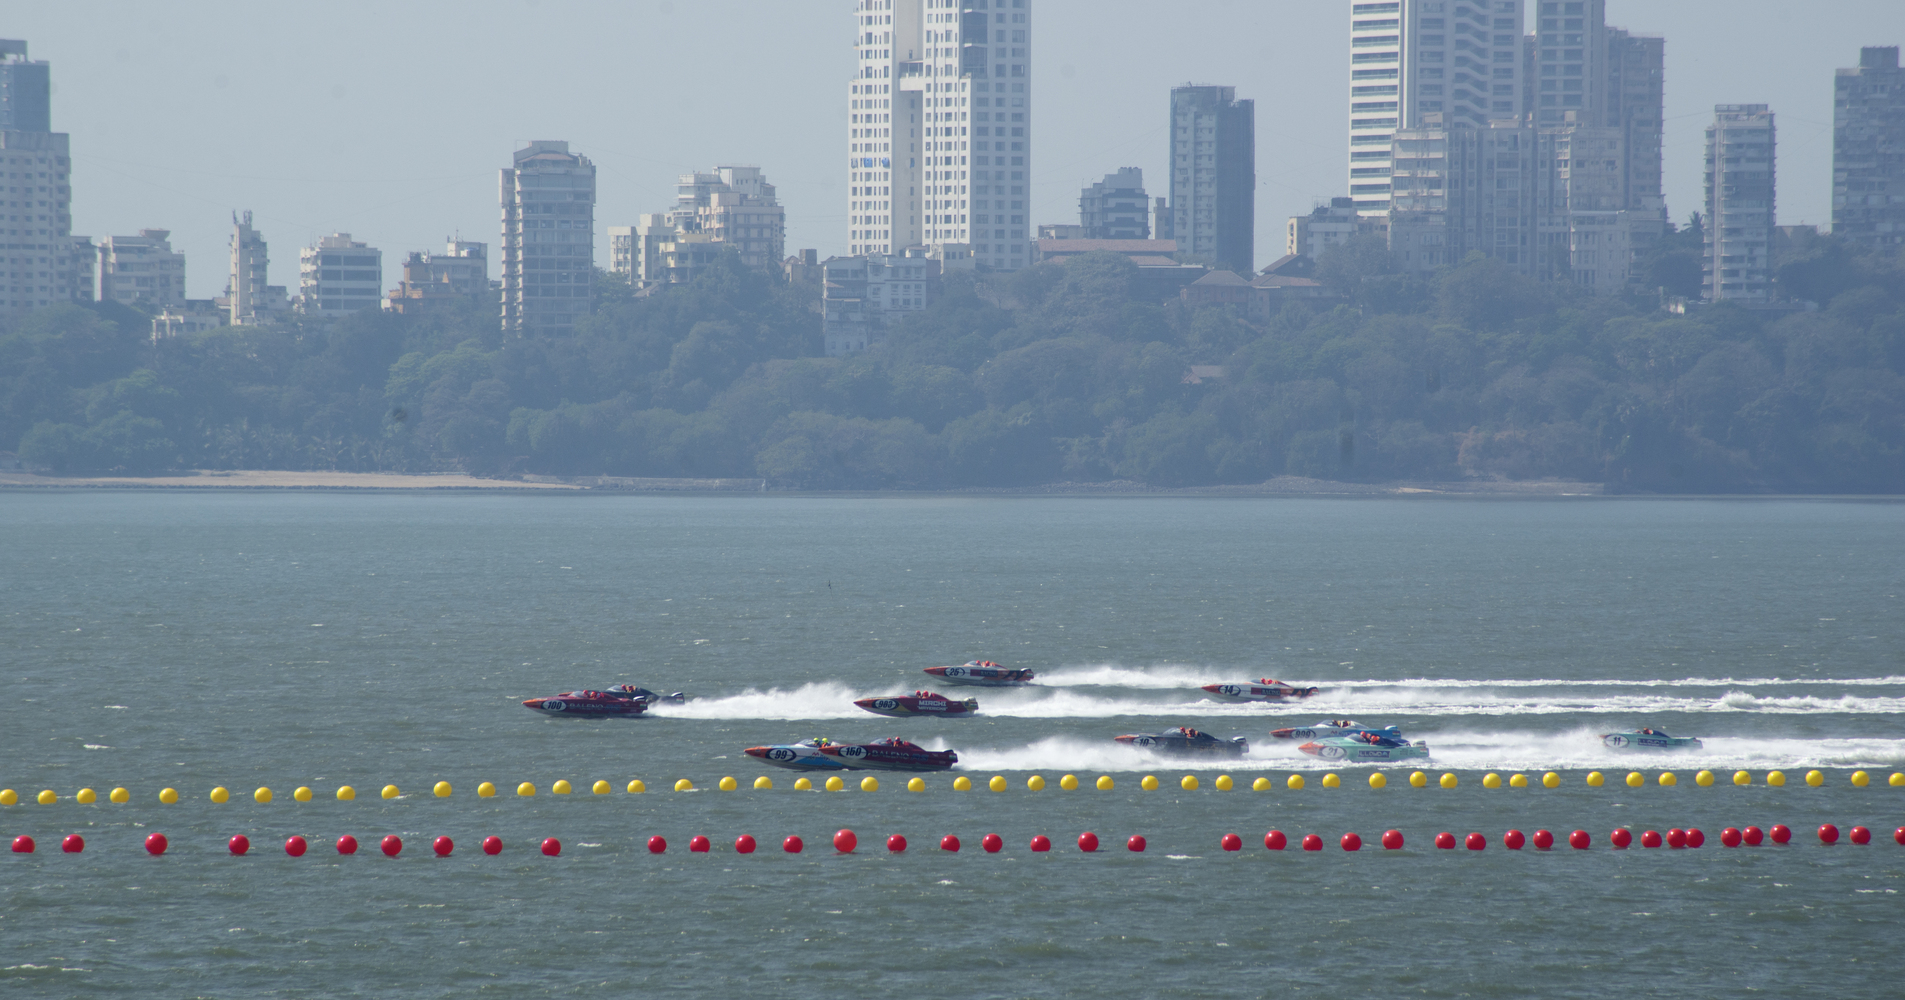 The year kicked off in Mumbai for the inaugural P1 SuperStock World Championship event